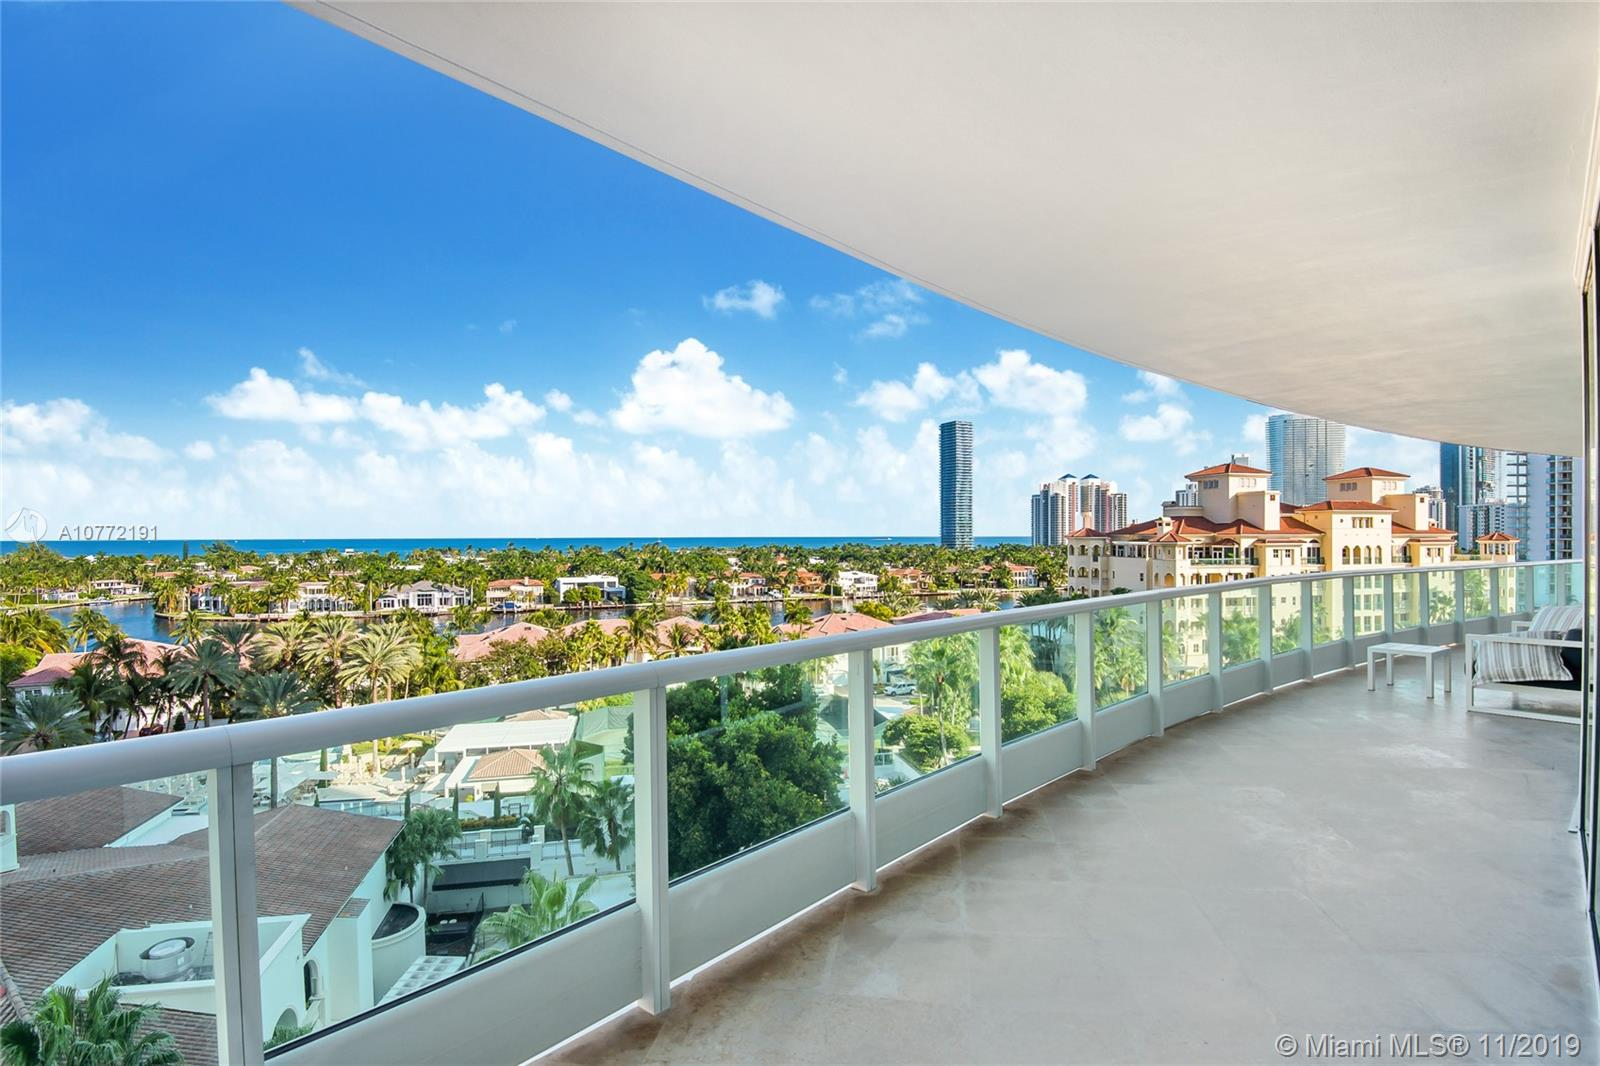 Spectacular and sophisticated condo. Three bedroom and three and a half bath, in the most luxury residence in Aventura-Porto Vita.Breathtaking views of the Atlantic Ocean and the Intracoastal waterway. Floor to ceiling windows and wrap around balcony. Top of the line appliances, snidero cabinetry, sub zero refrigerator, gagenov stove and oven, wine cooler. large ensuite with custom walk-in closets. Washer/dryer. Absolute first class amenities. Just renovated clubhouse with restaurant, lounge and bar. Tennis court, spa and fitness center and business center. Kids playground, pool, poolside restaurant. close to Aventura Mall, restaurants, shops, places of worship. Easy to show!. Bring your most discerning clients- ready to move in.